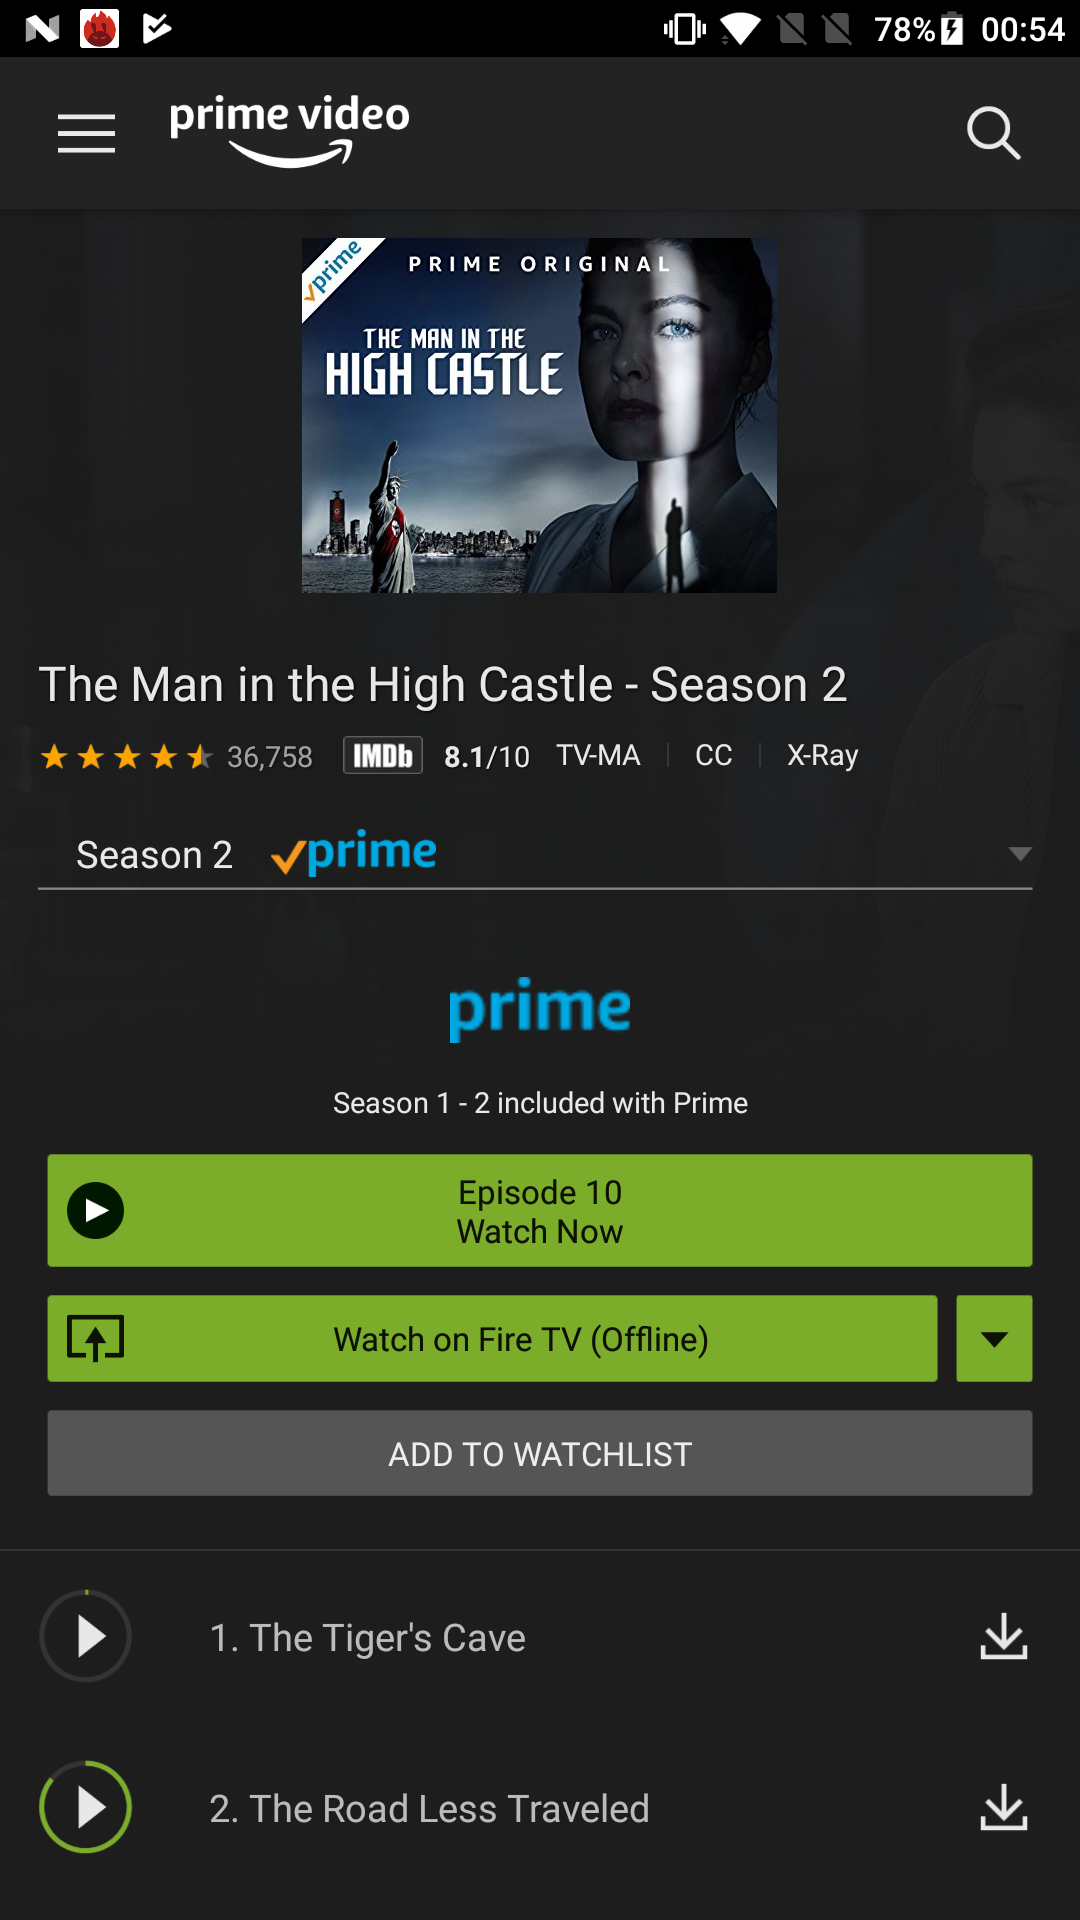 Amazon.com: Amazon Prime Video: Appstore for Android